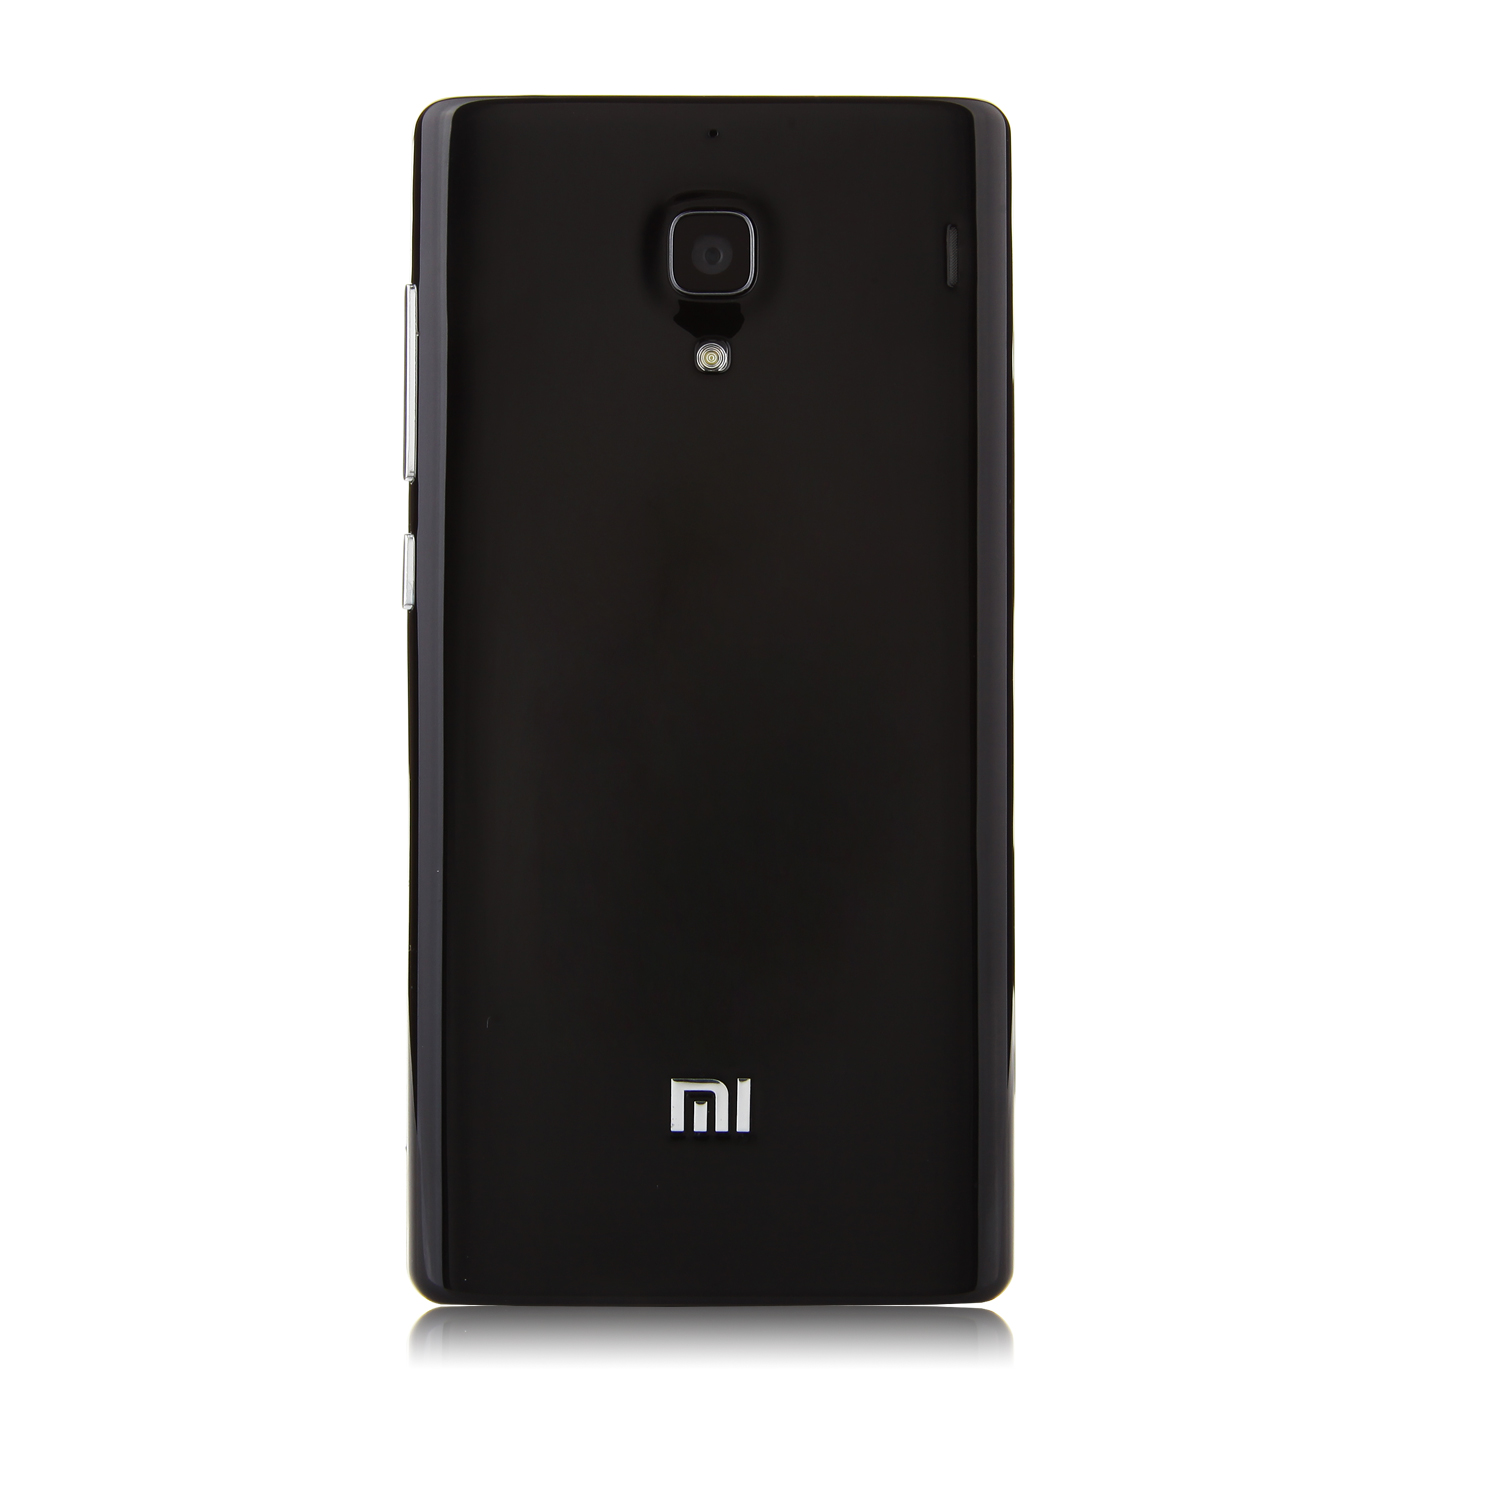 Replacement Battery Cover Back Case Frosted Case for XIAOMI Redmi 1S Smartphone Black